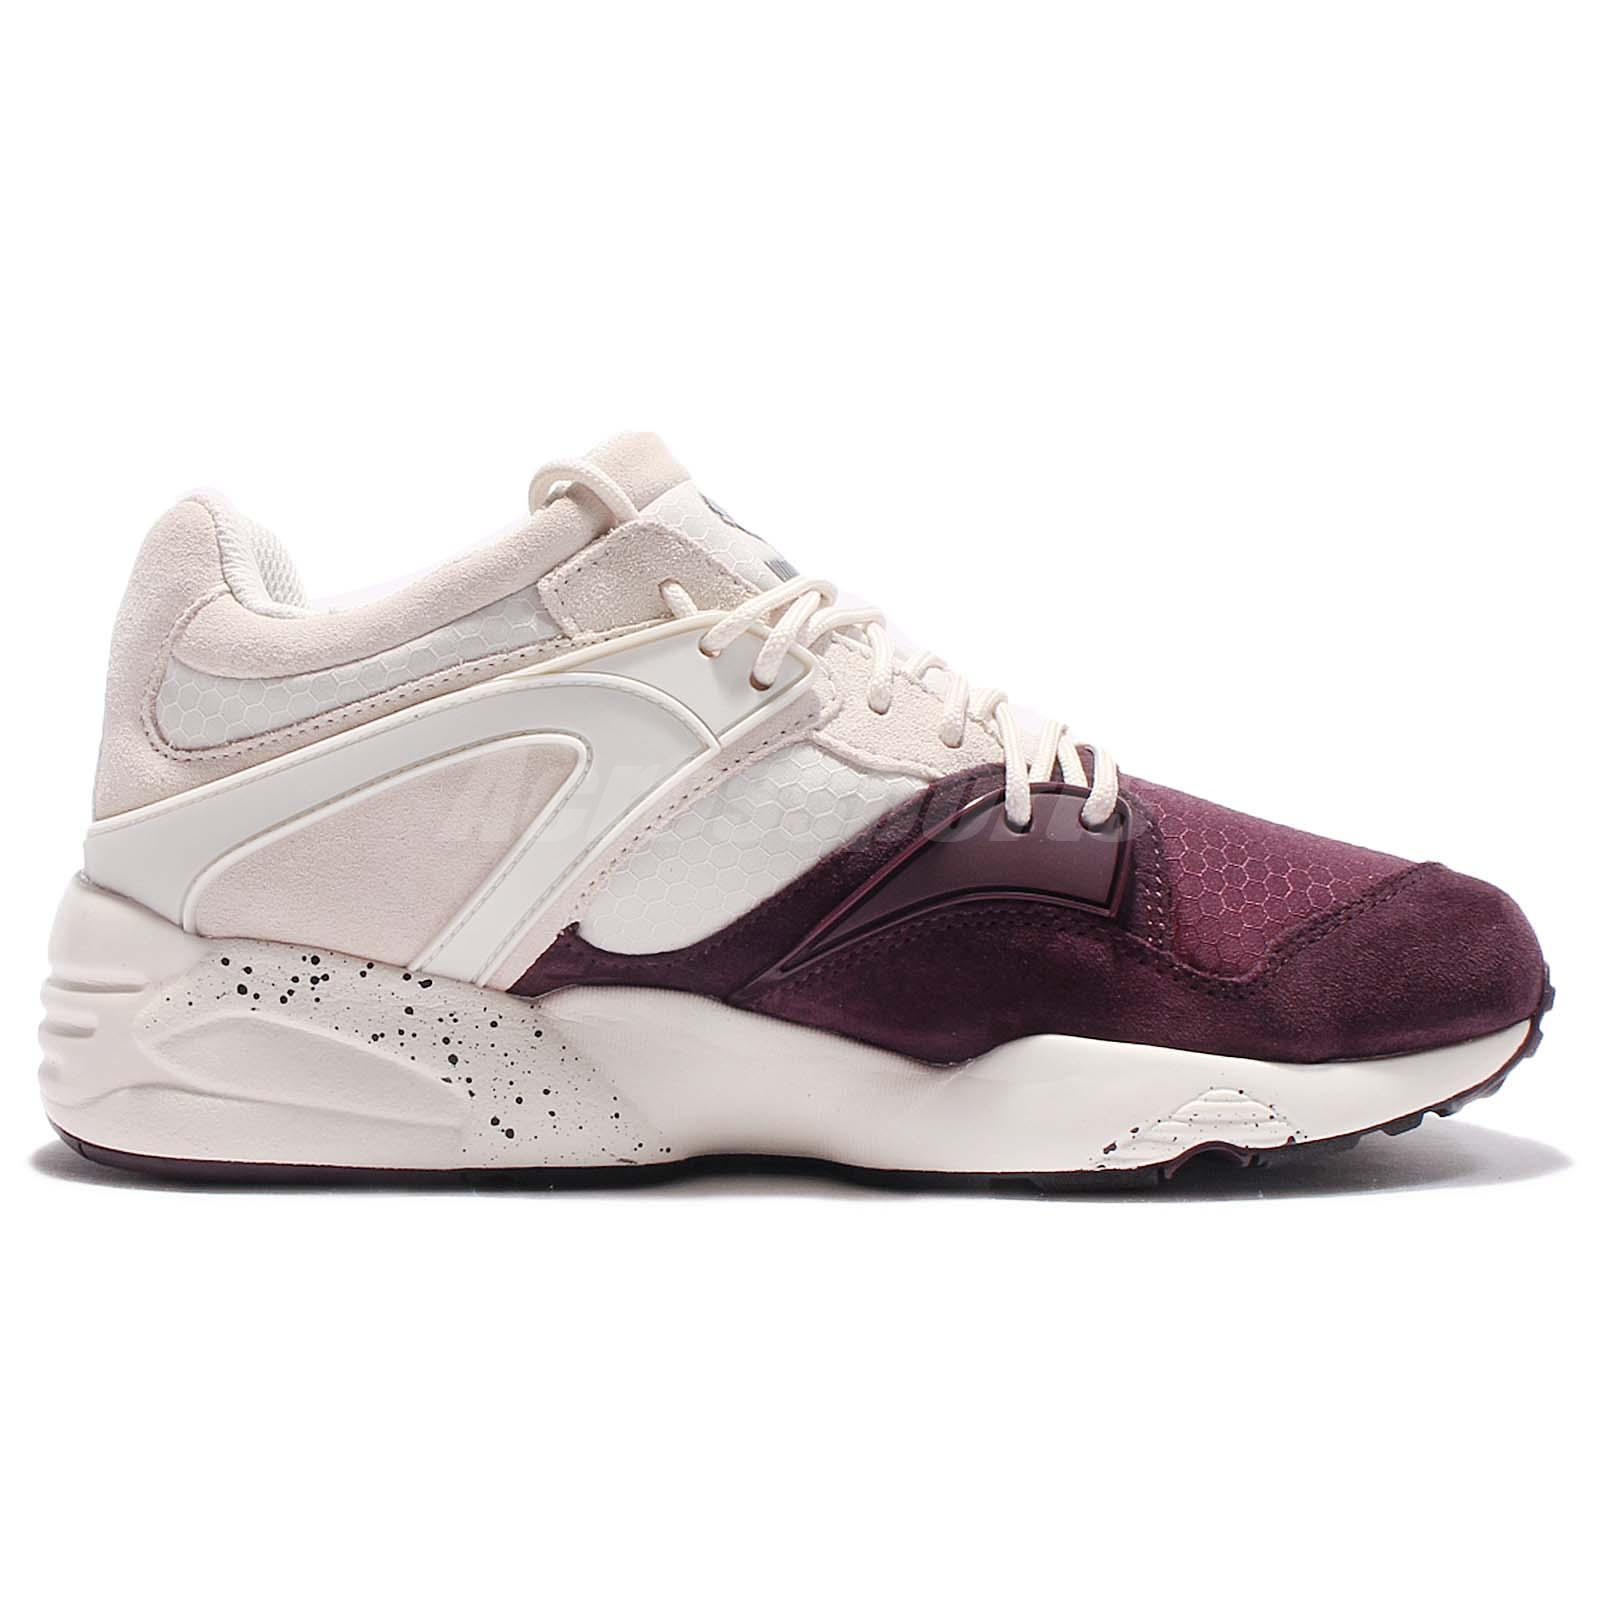 Détails Shoe Trinomic Blaze Trainers Running Winter Tech White Purple Puma 361341 Sur Men 03 iOPkTwXZul